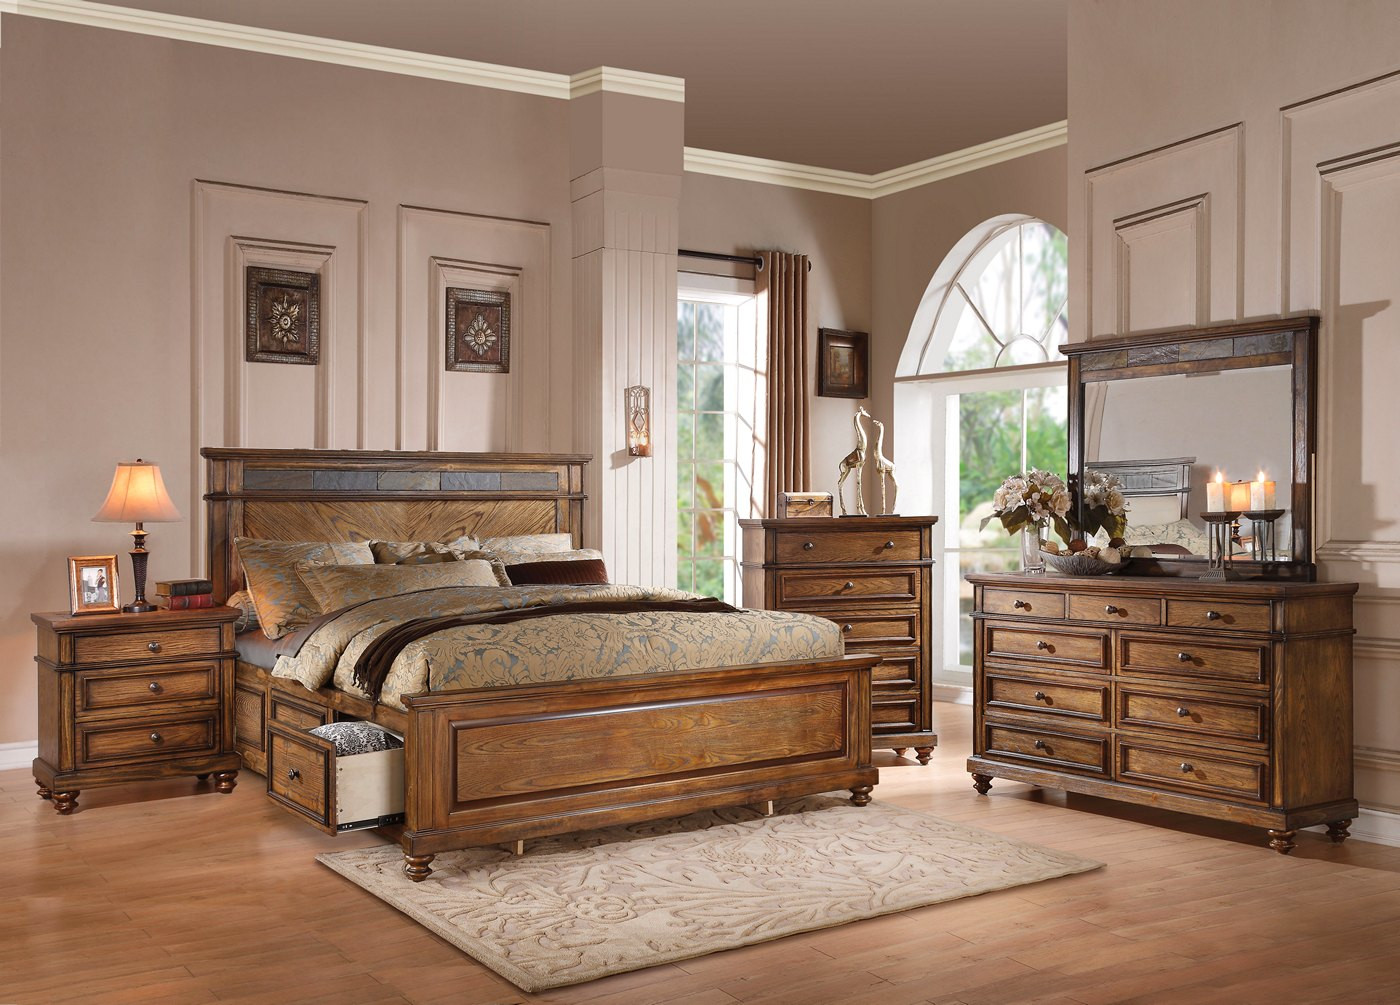 Rustic Bedroom Set King  Abilene Rustic 4 pc King Storage Bed Set with Stone Accent